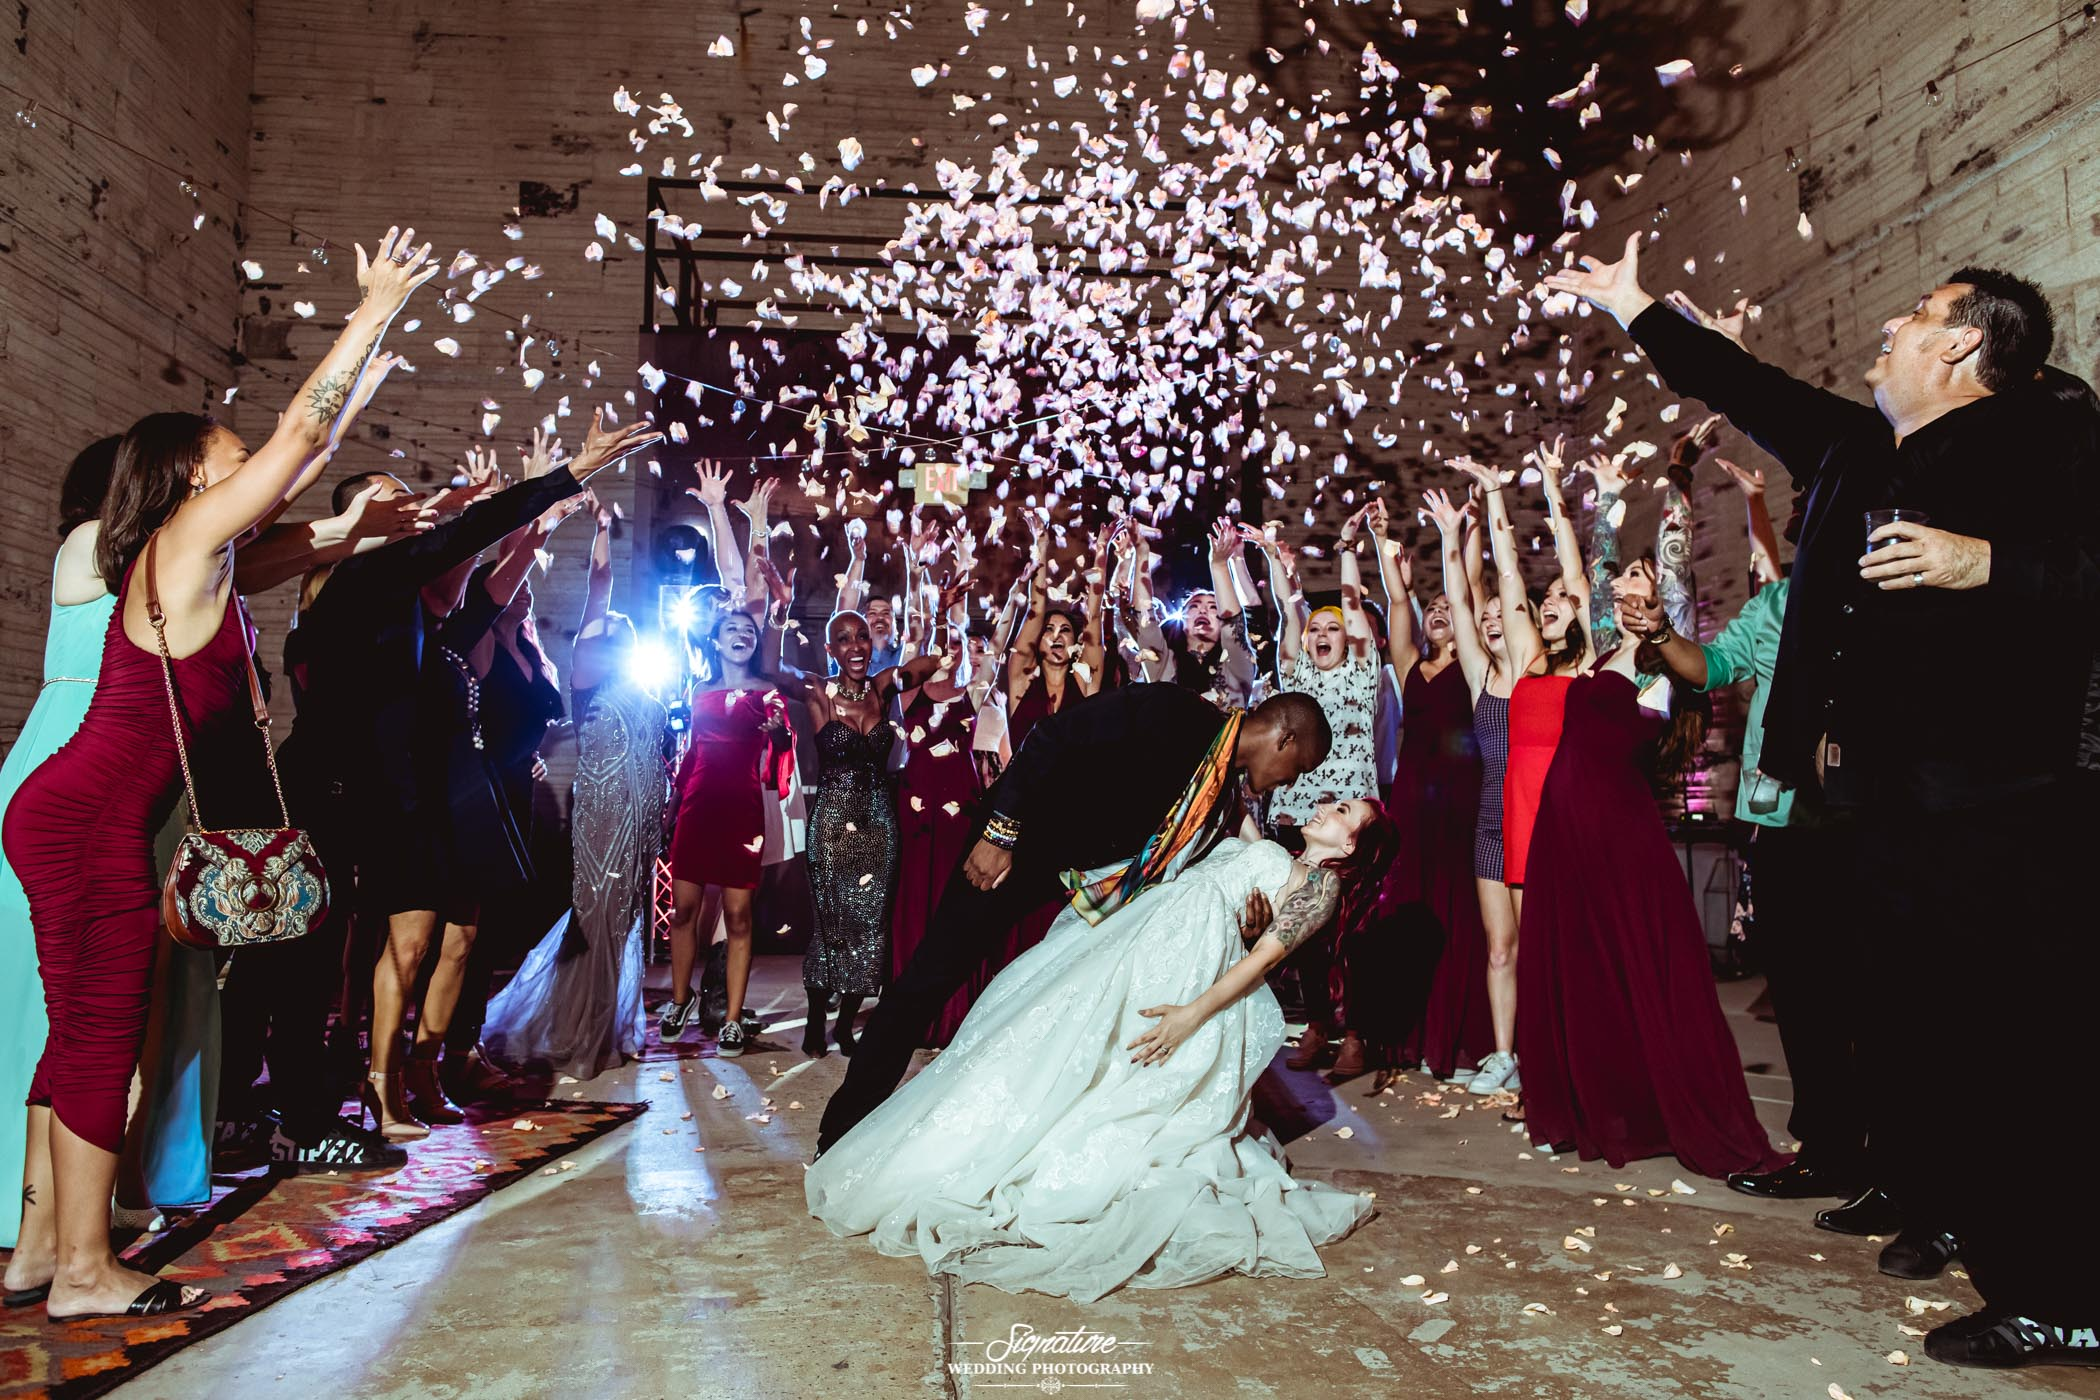 6 Fantastic Props To Have on Your Wedding Day